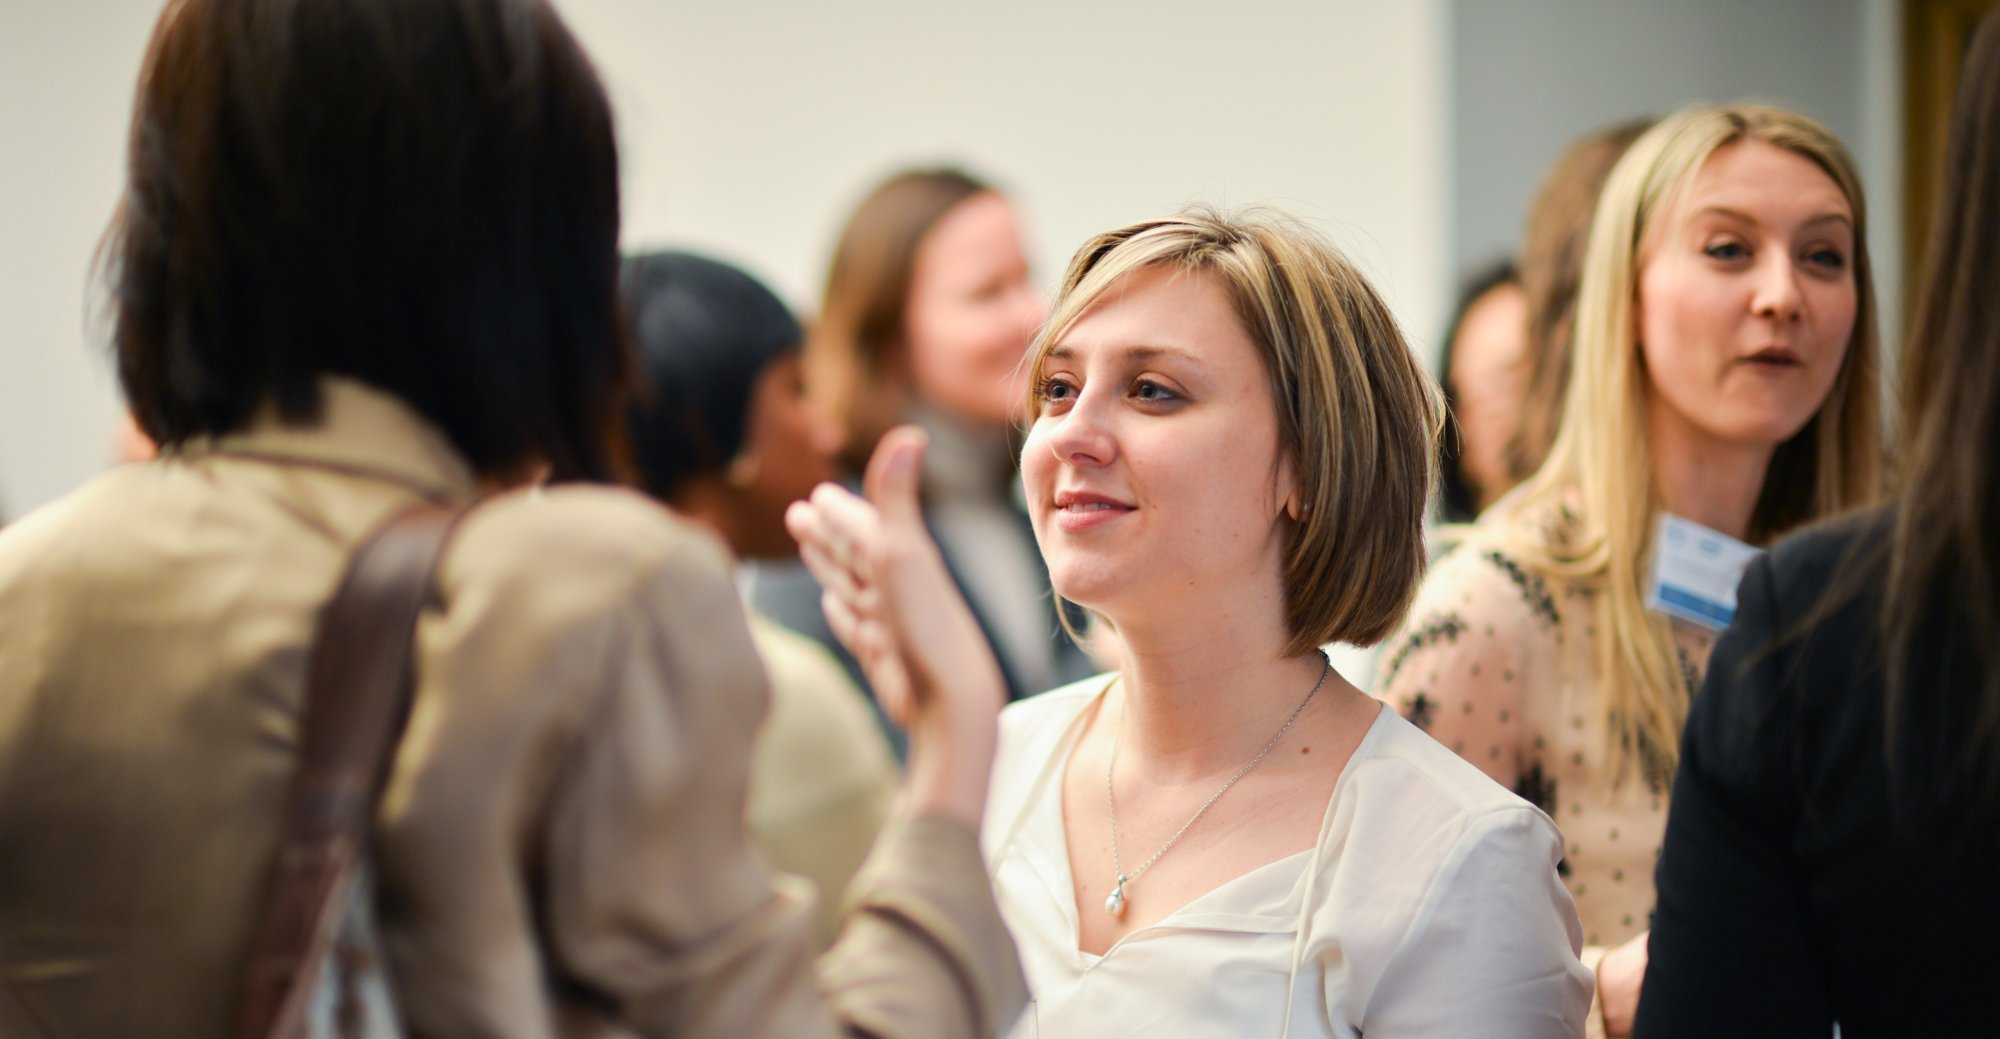 Business woman confident at networking event